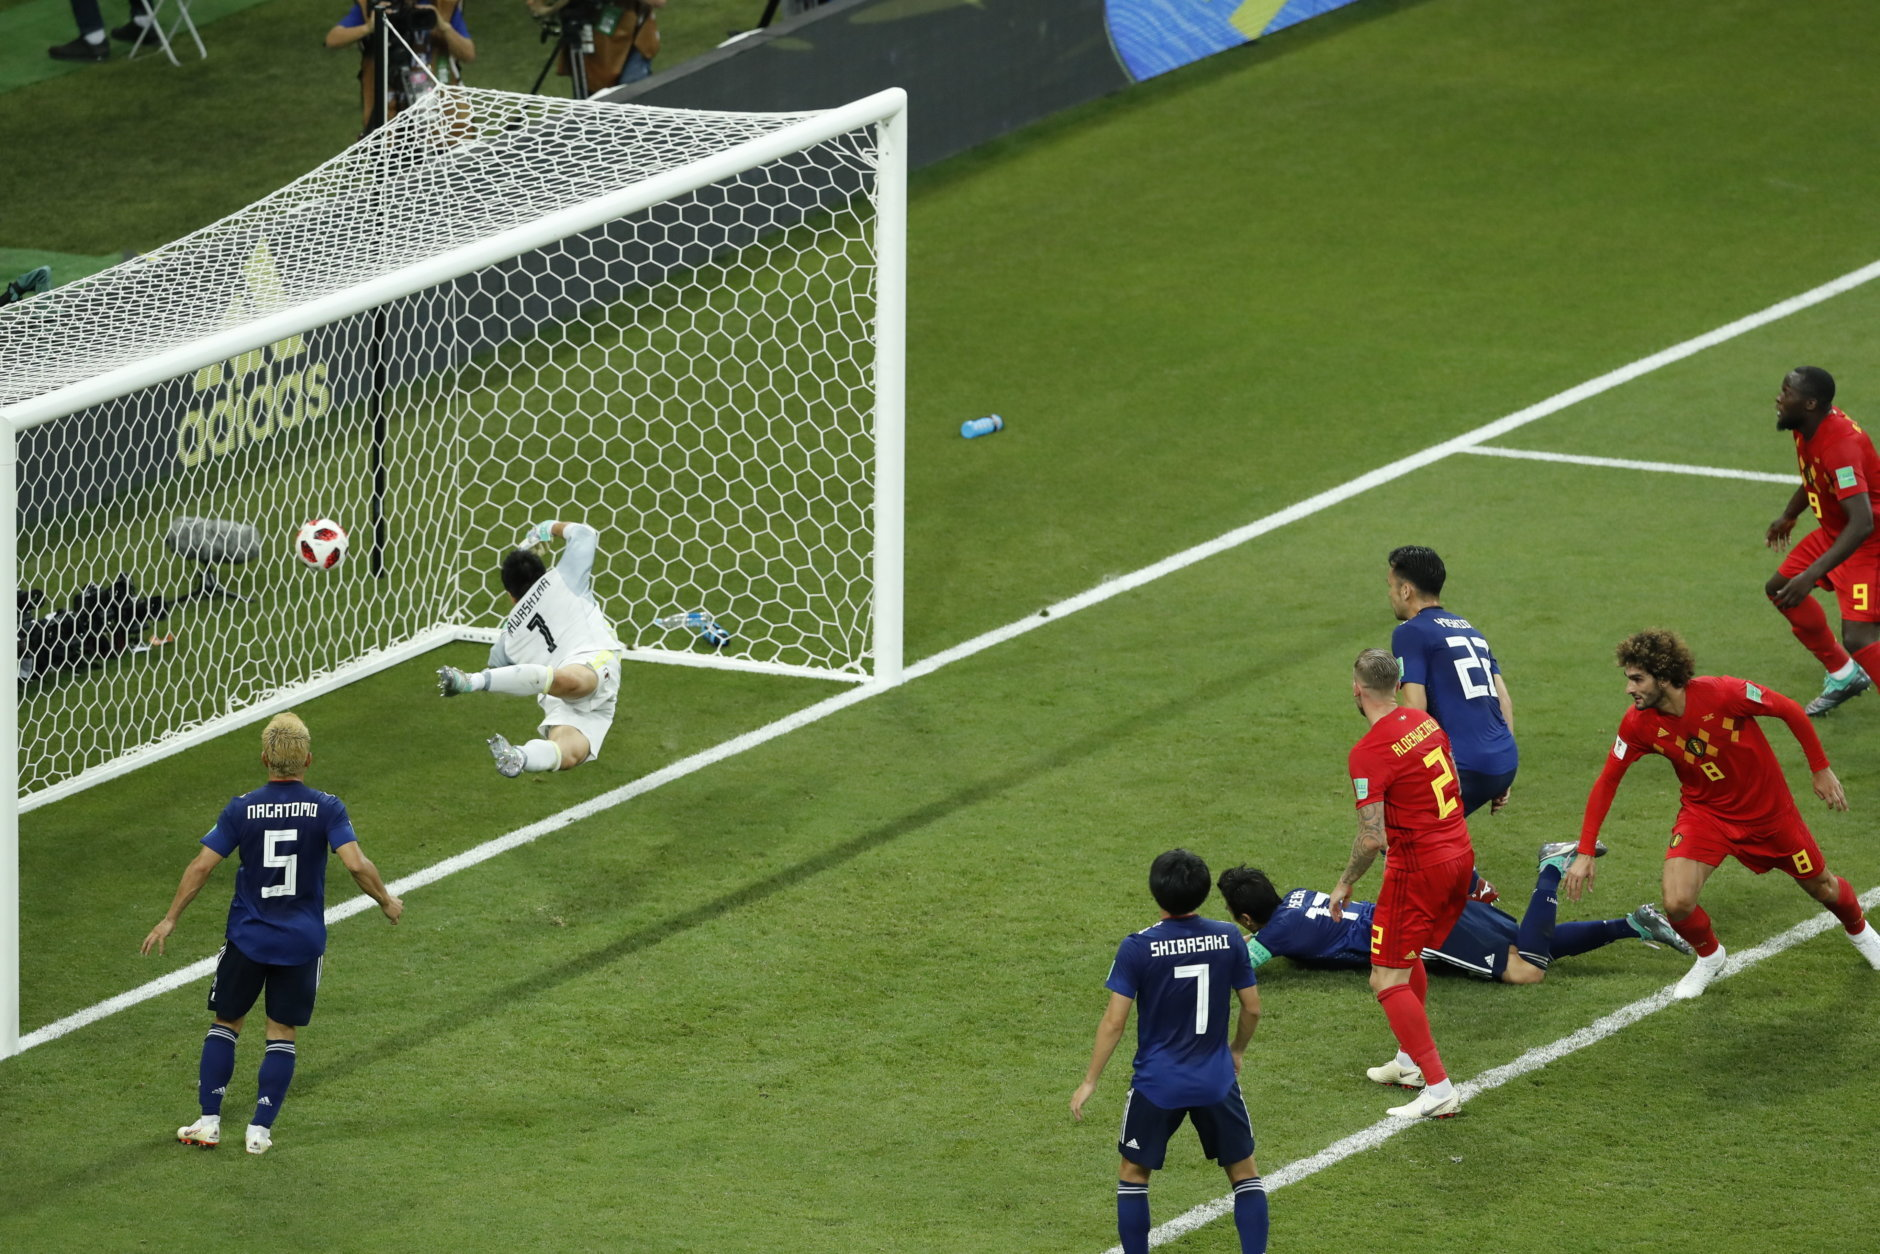 Belgium's Marouane Fellaini, second from right, scores his second side goal during the round of 16 match between Belgium and Japan at the 2018 soccer World Cup in the Rostov Arena, in Rostov-on-Don, Russia, Monday, July 2, 2018. (AP Photo/Hassan Ammar)